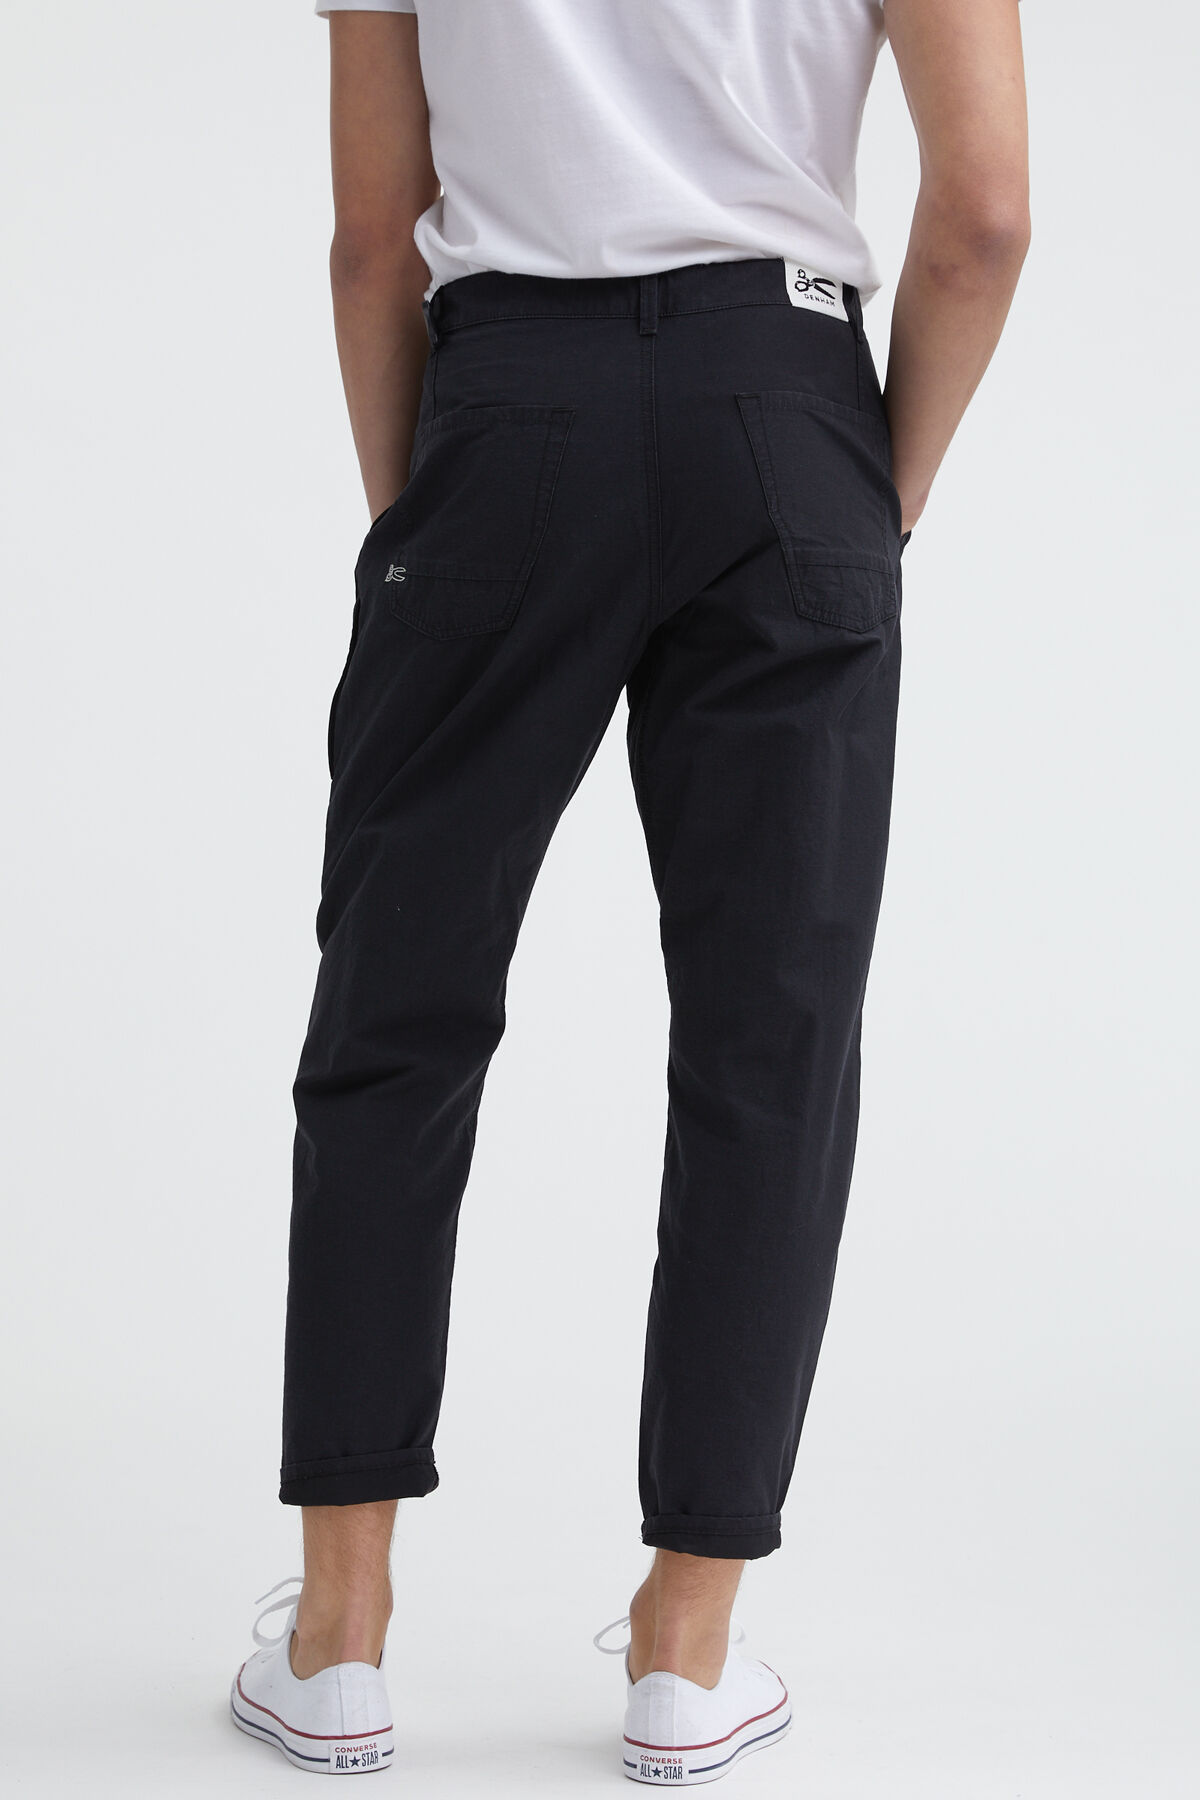 TRIAL PANT Garment Dyed - Tapered Fit